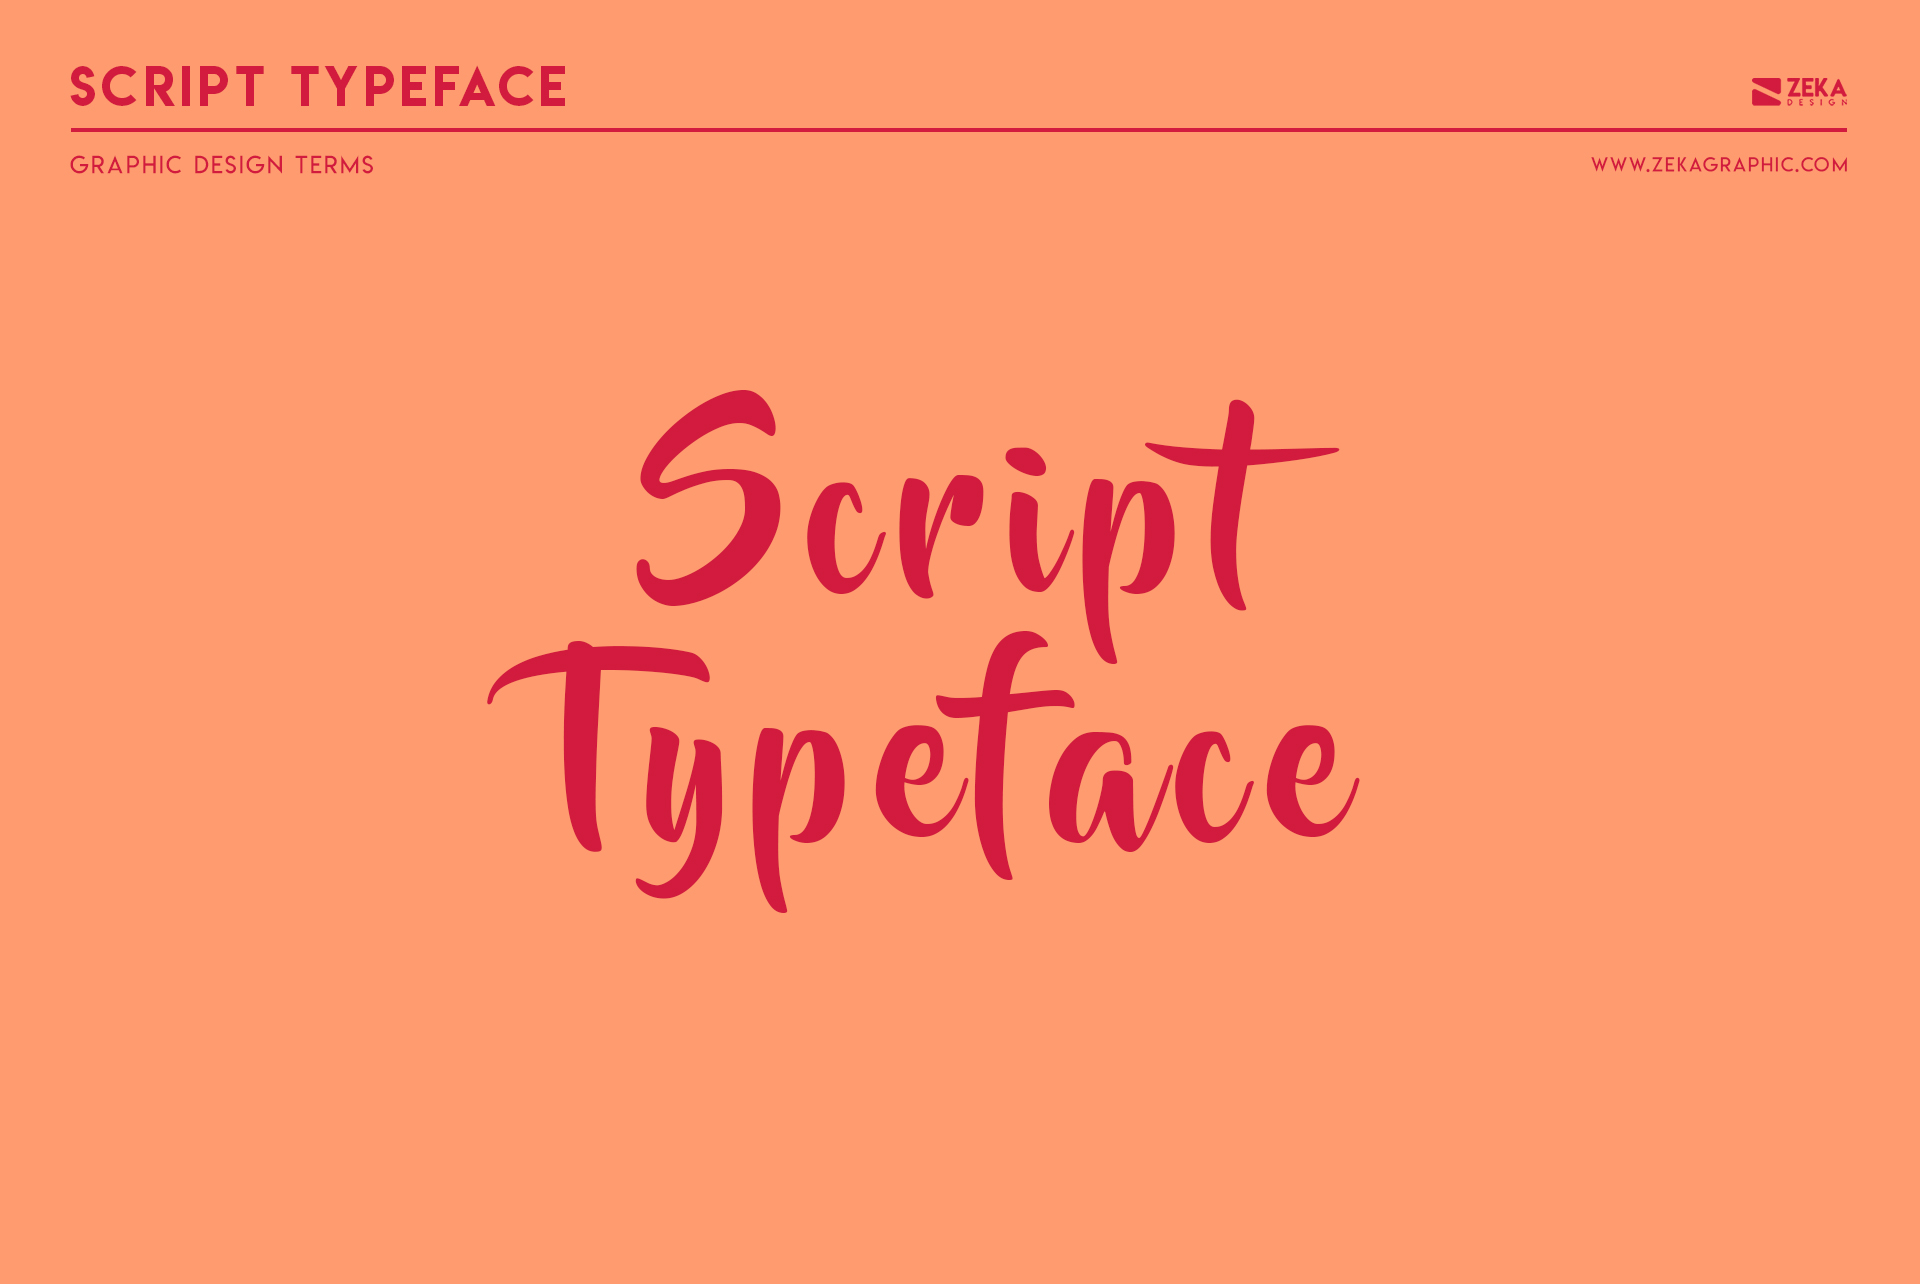 Script Typeface Graphic Design Terms